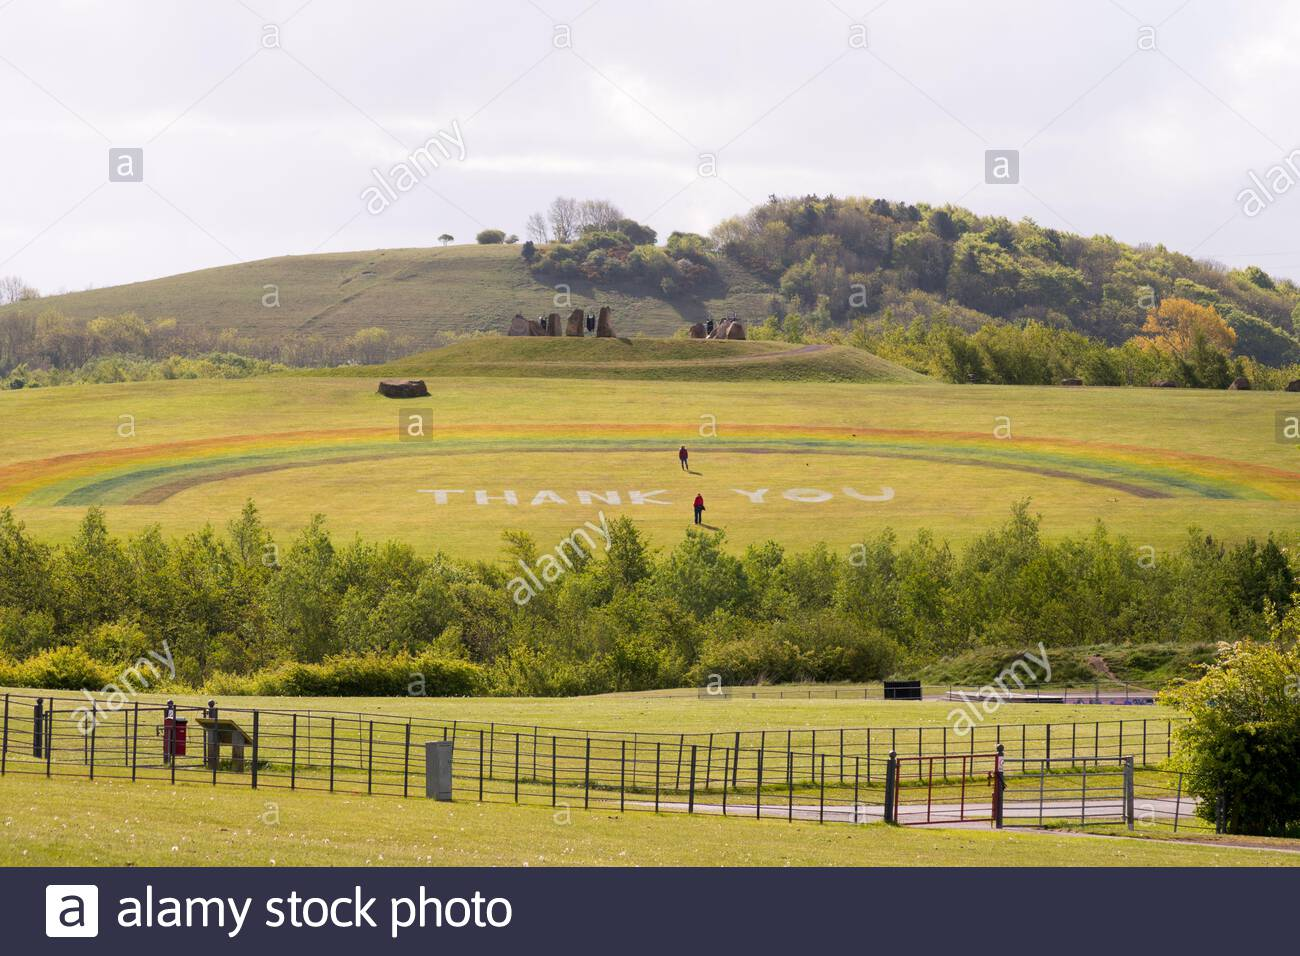 The NHS rainbow showing solidarity with NHS workers, on a hillside in Herrington Country Park, Sunderland, England, UK Stock Photo